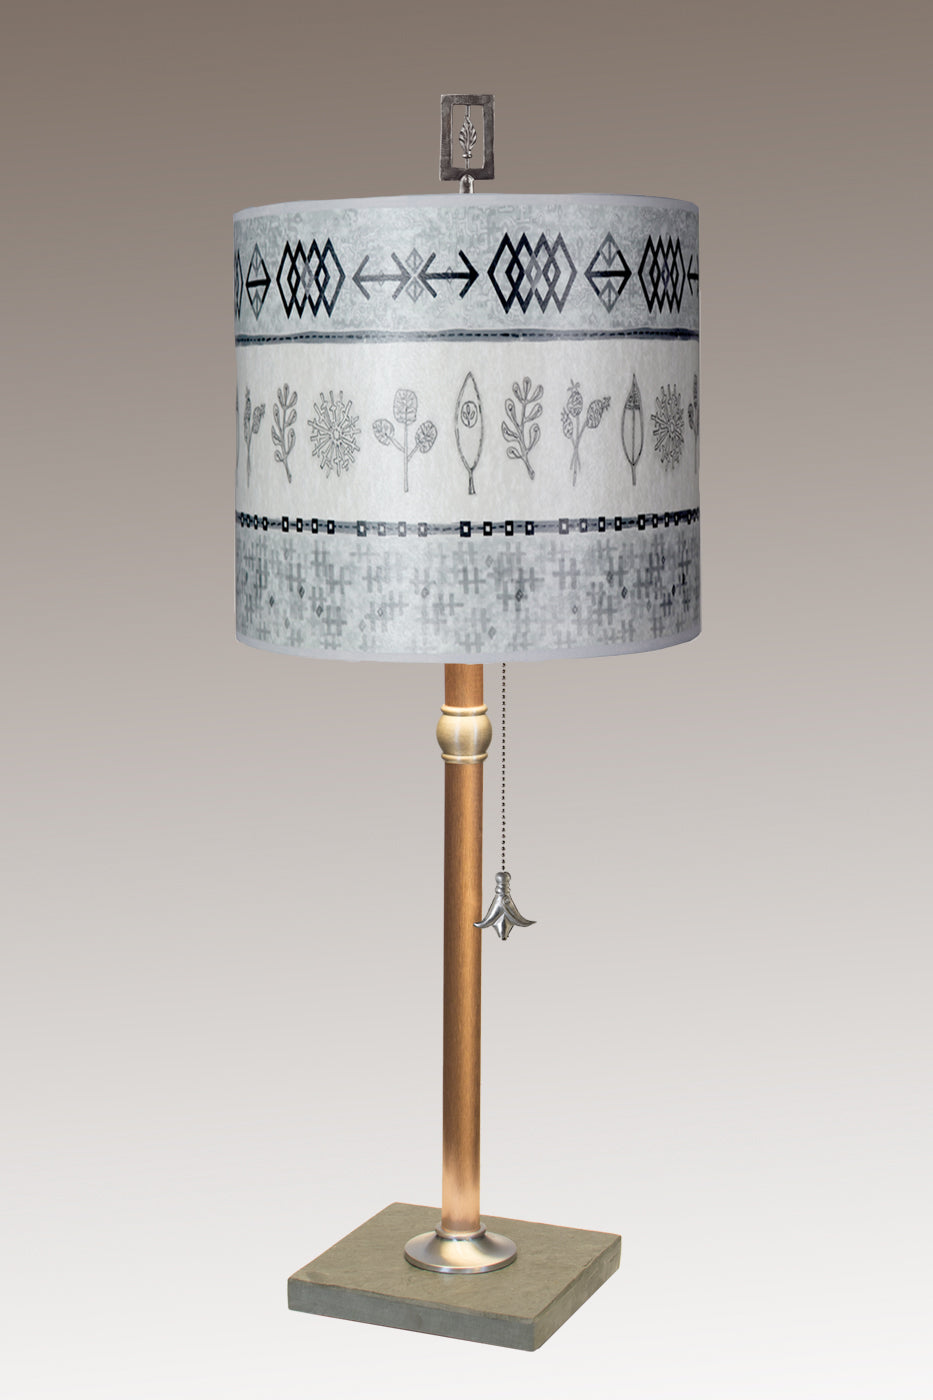 Copper Table Lamp with Medium Drum Shade in Woven & Sprig in Mist